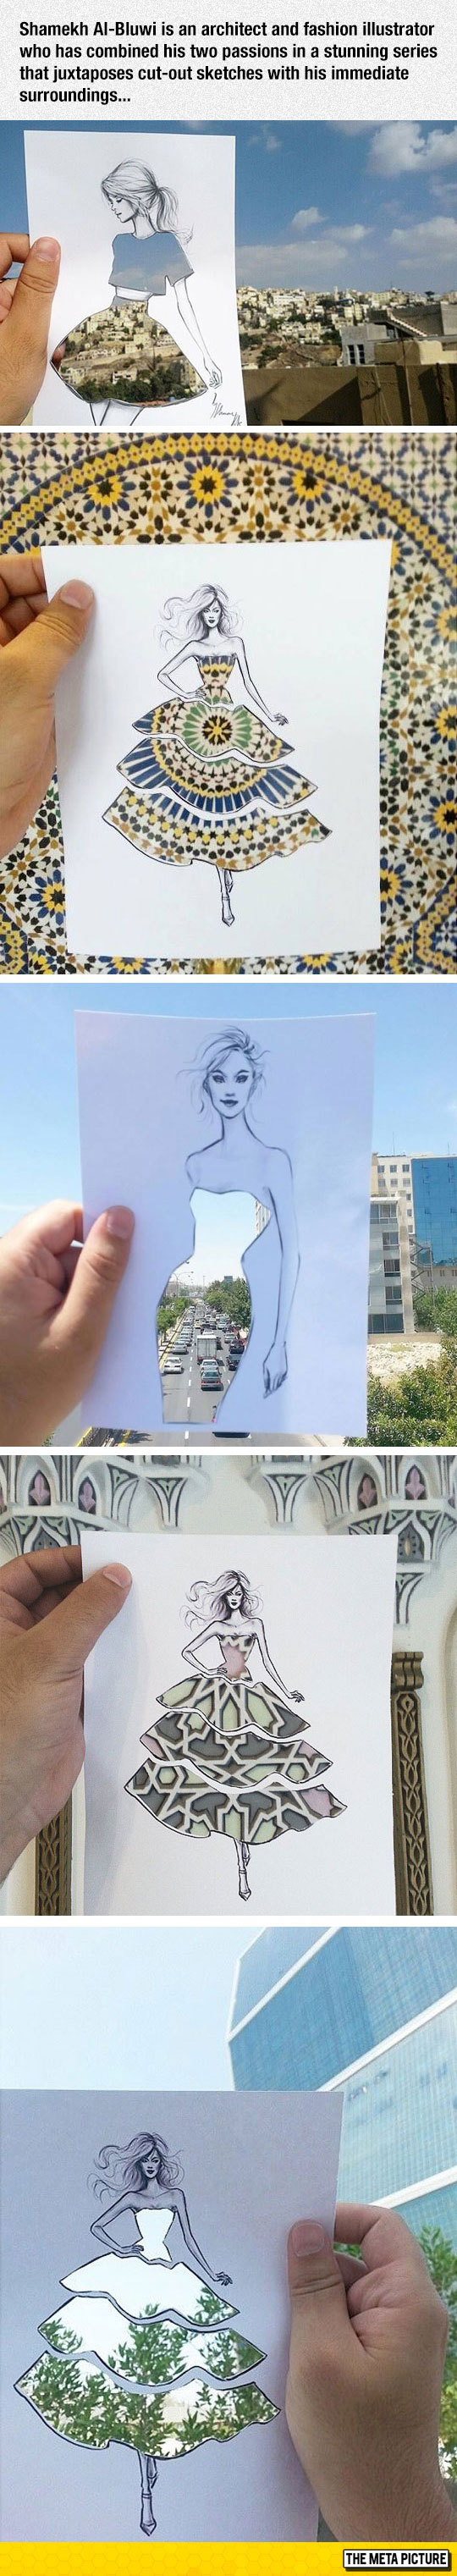 cool-fashion-design-sketches-view